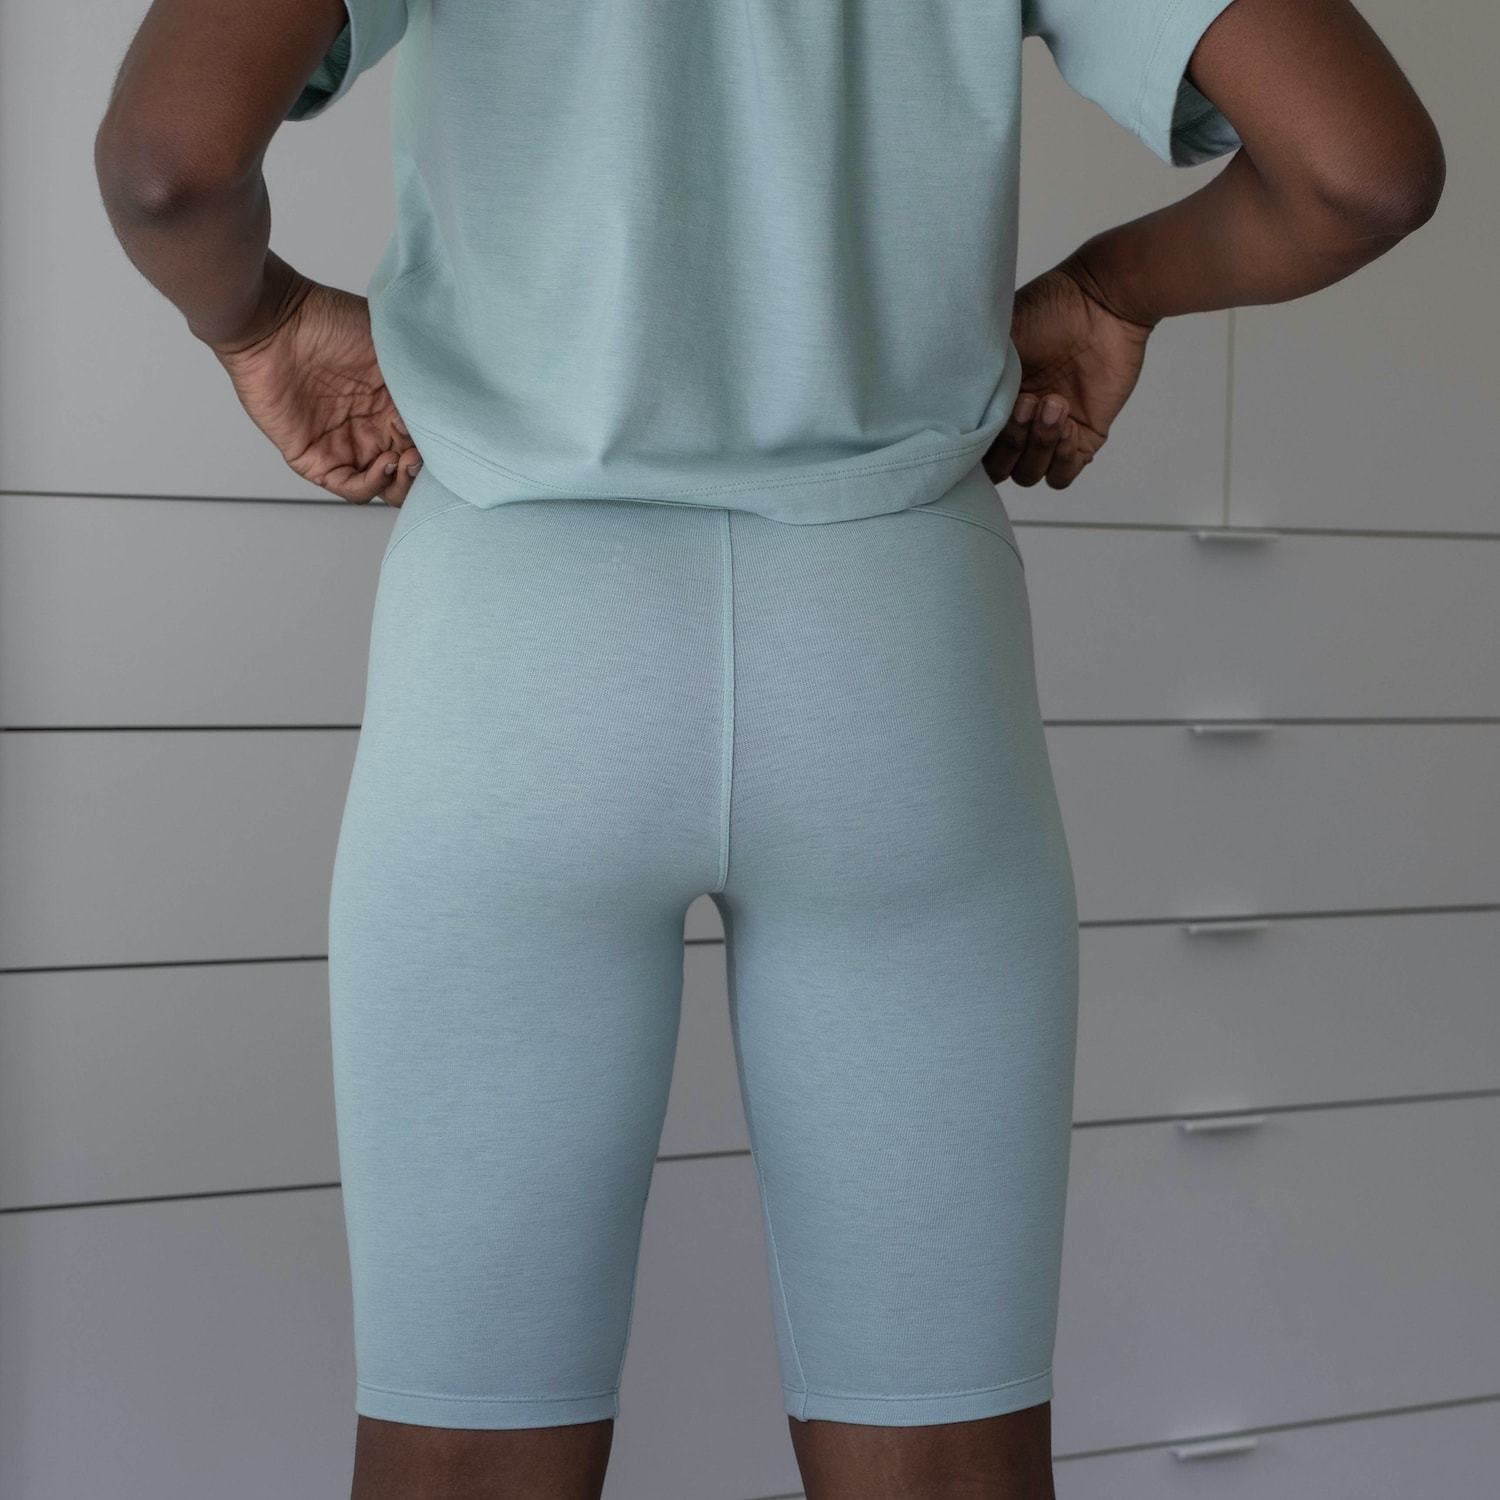 Lunya Sleepwear Restore Bike Short - #Aloe